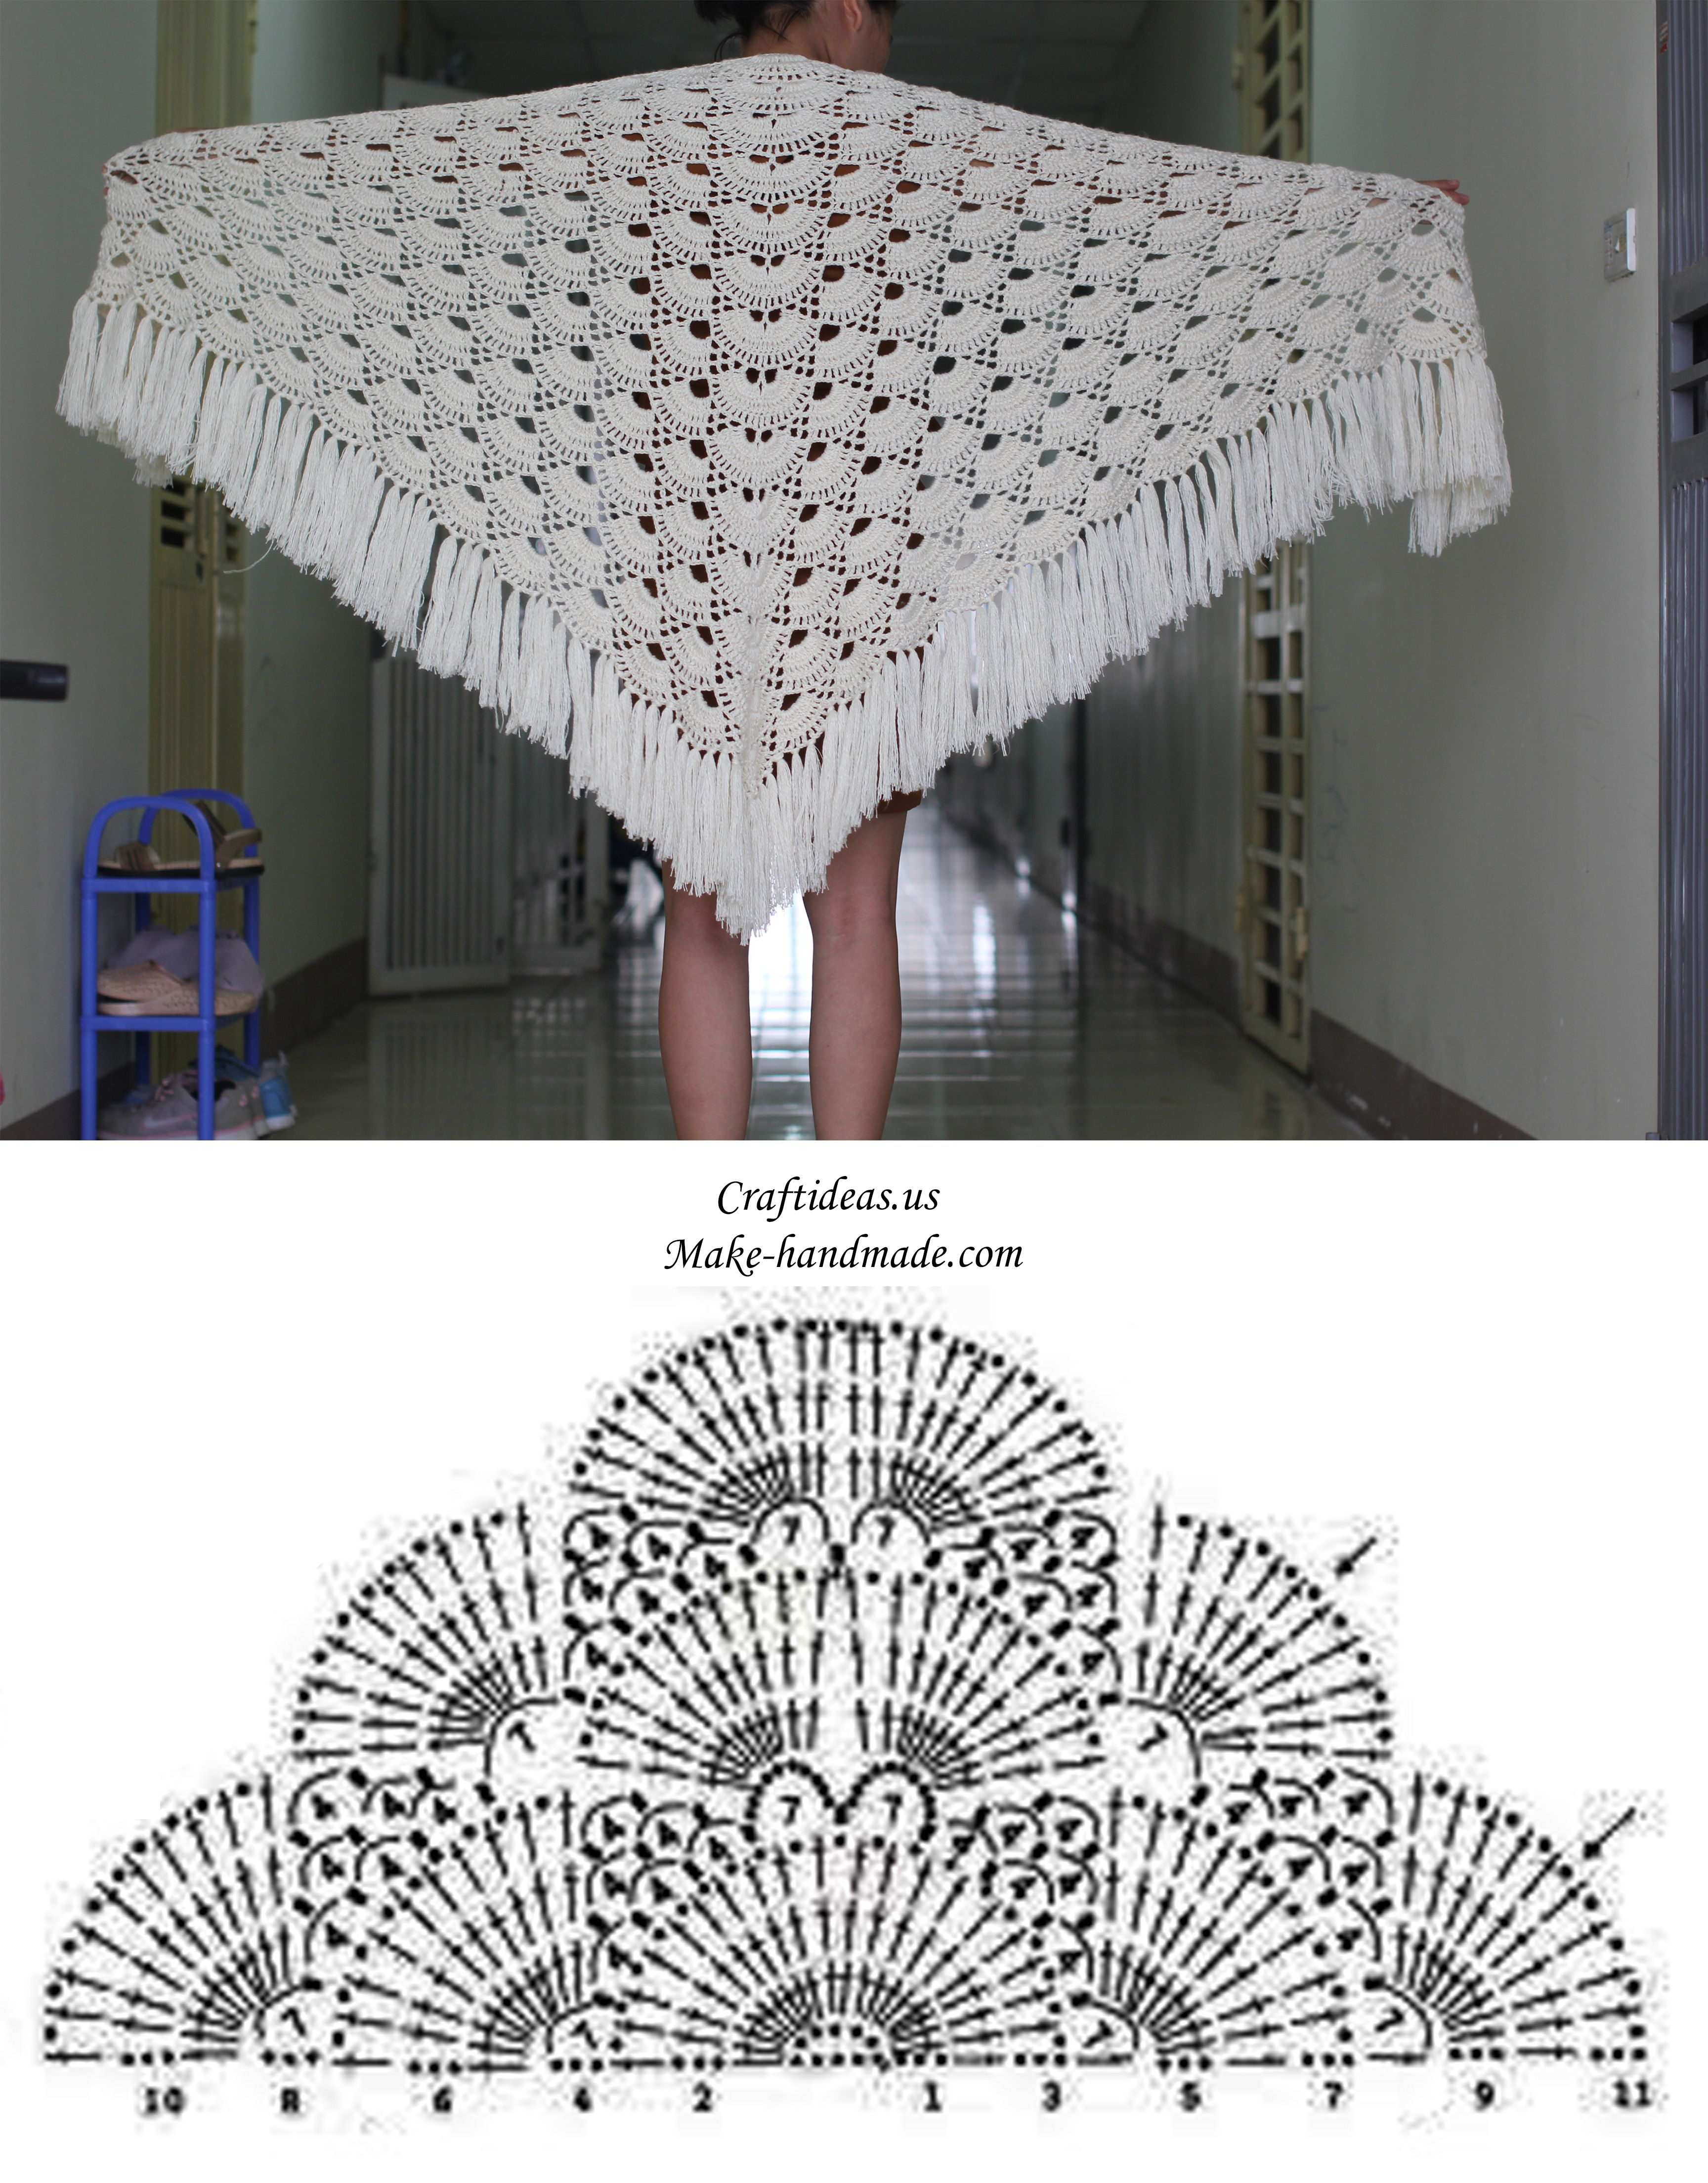 Crochet Beauty Shawl For Winter Chart Shawlsthrows And Other All Stitch Diagrams Doris Chan